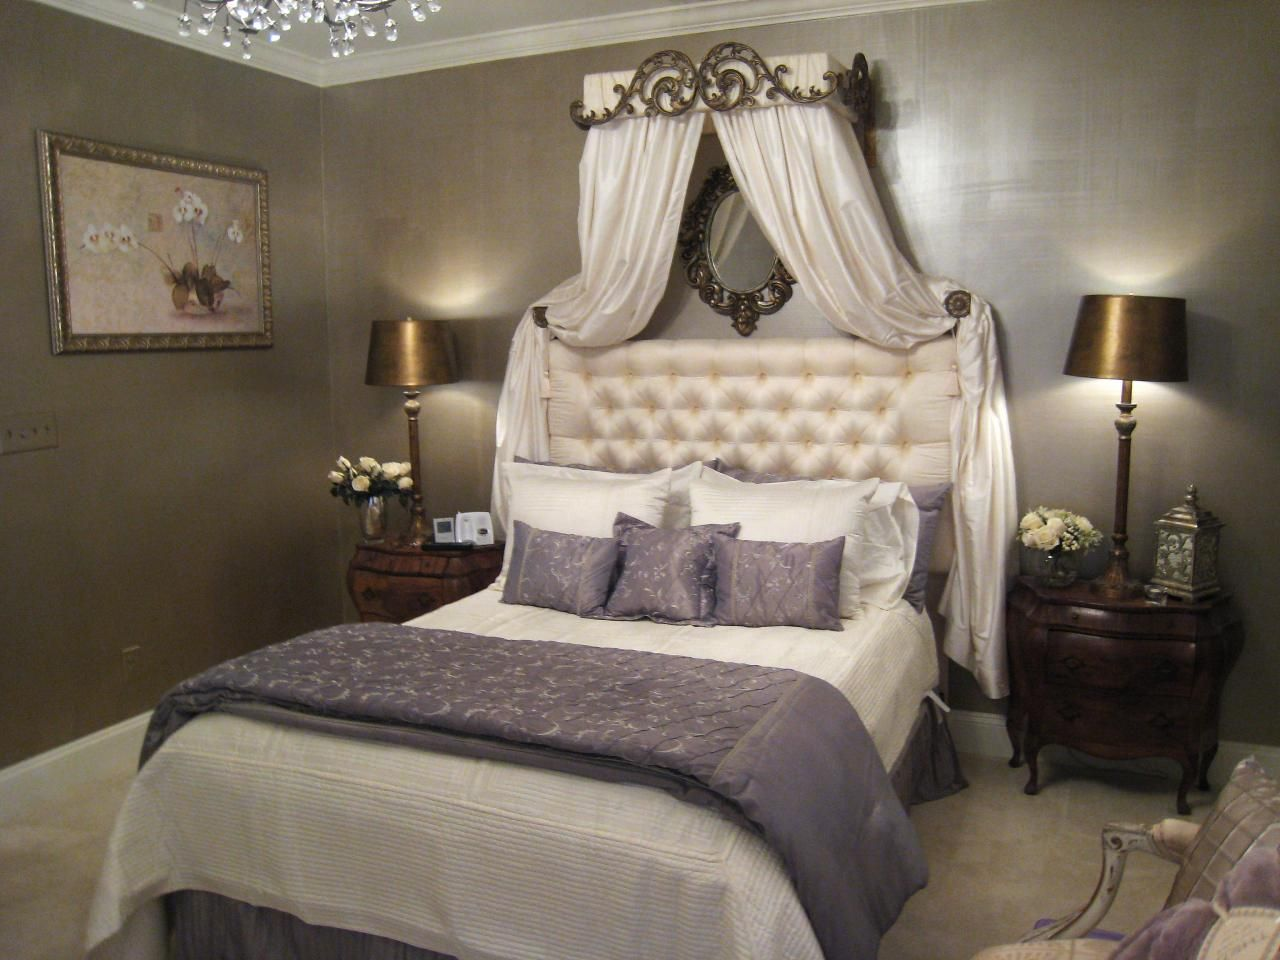 Bed Crown Design Ideas Bed Crown Hgtv And Wall Waterfall - Canopy idea bed crown